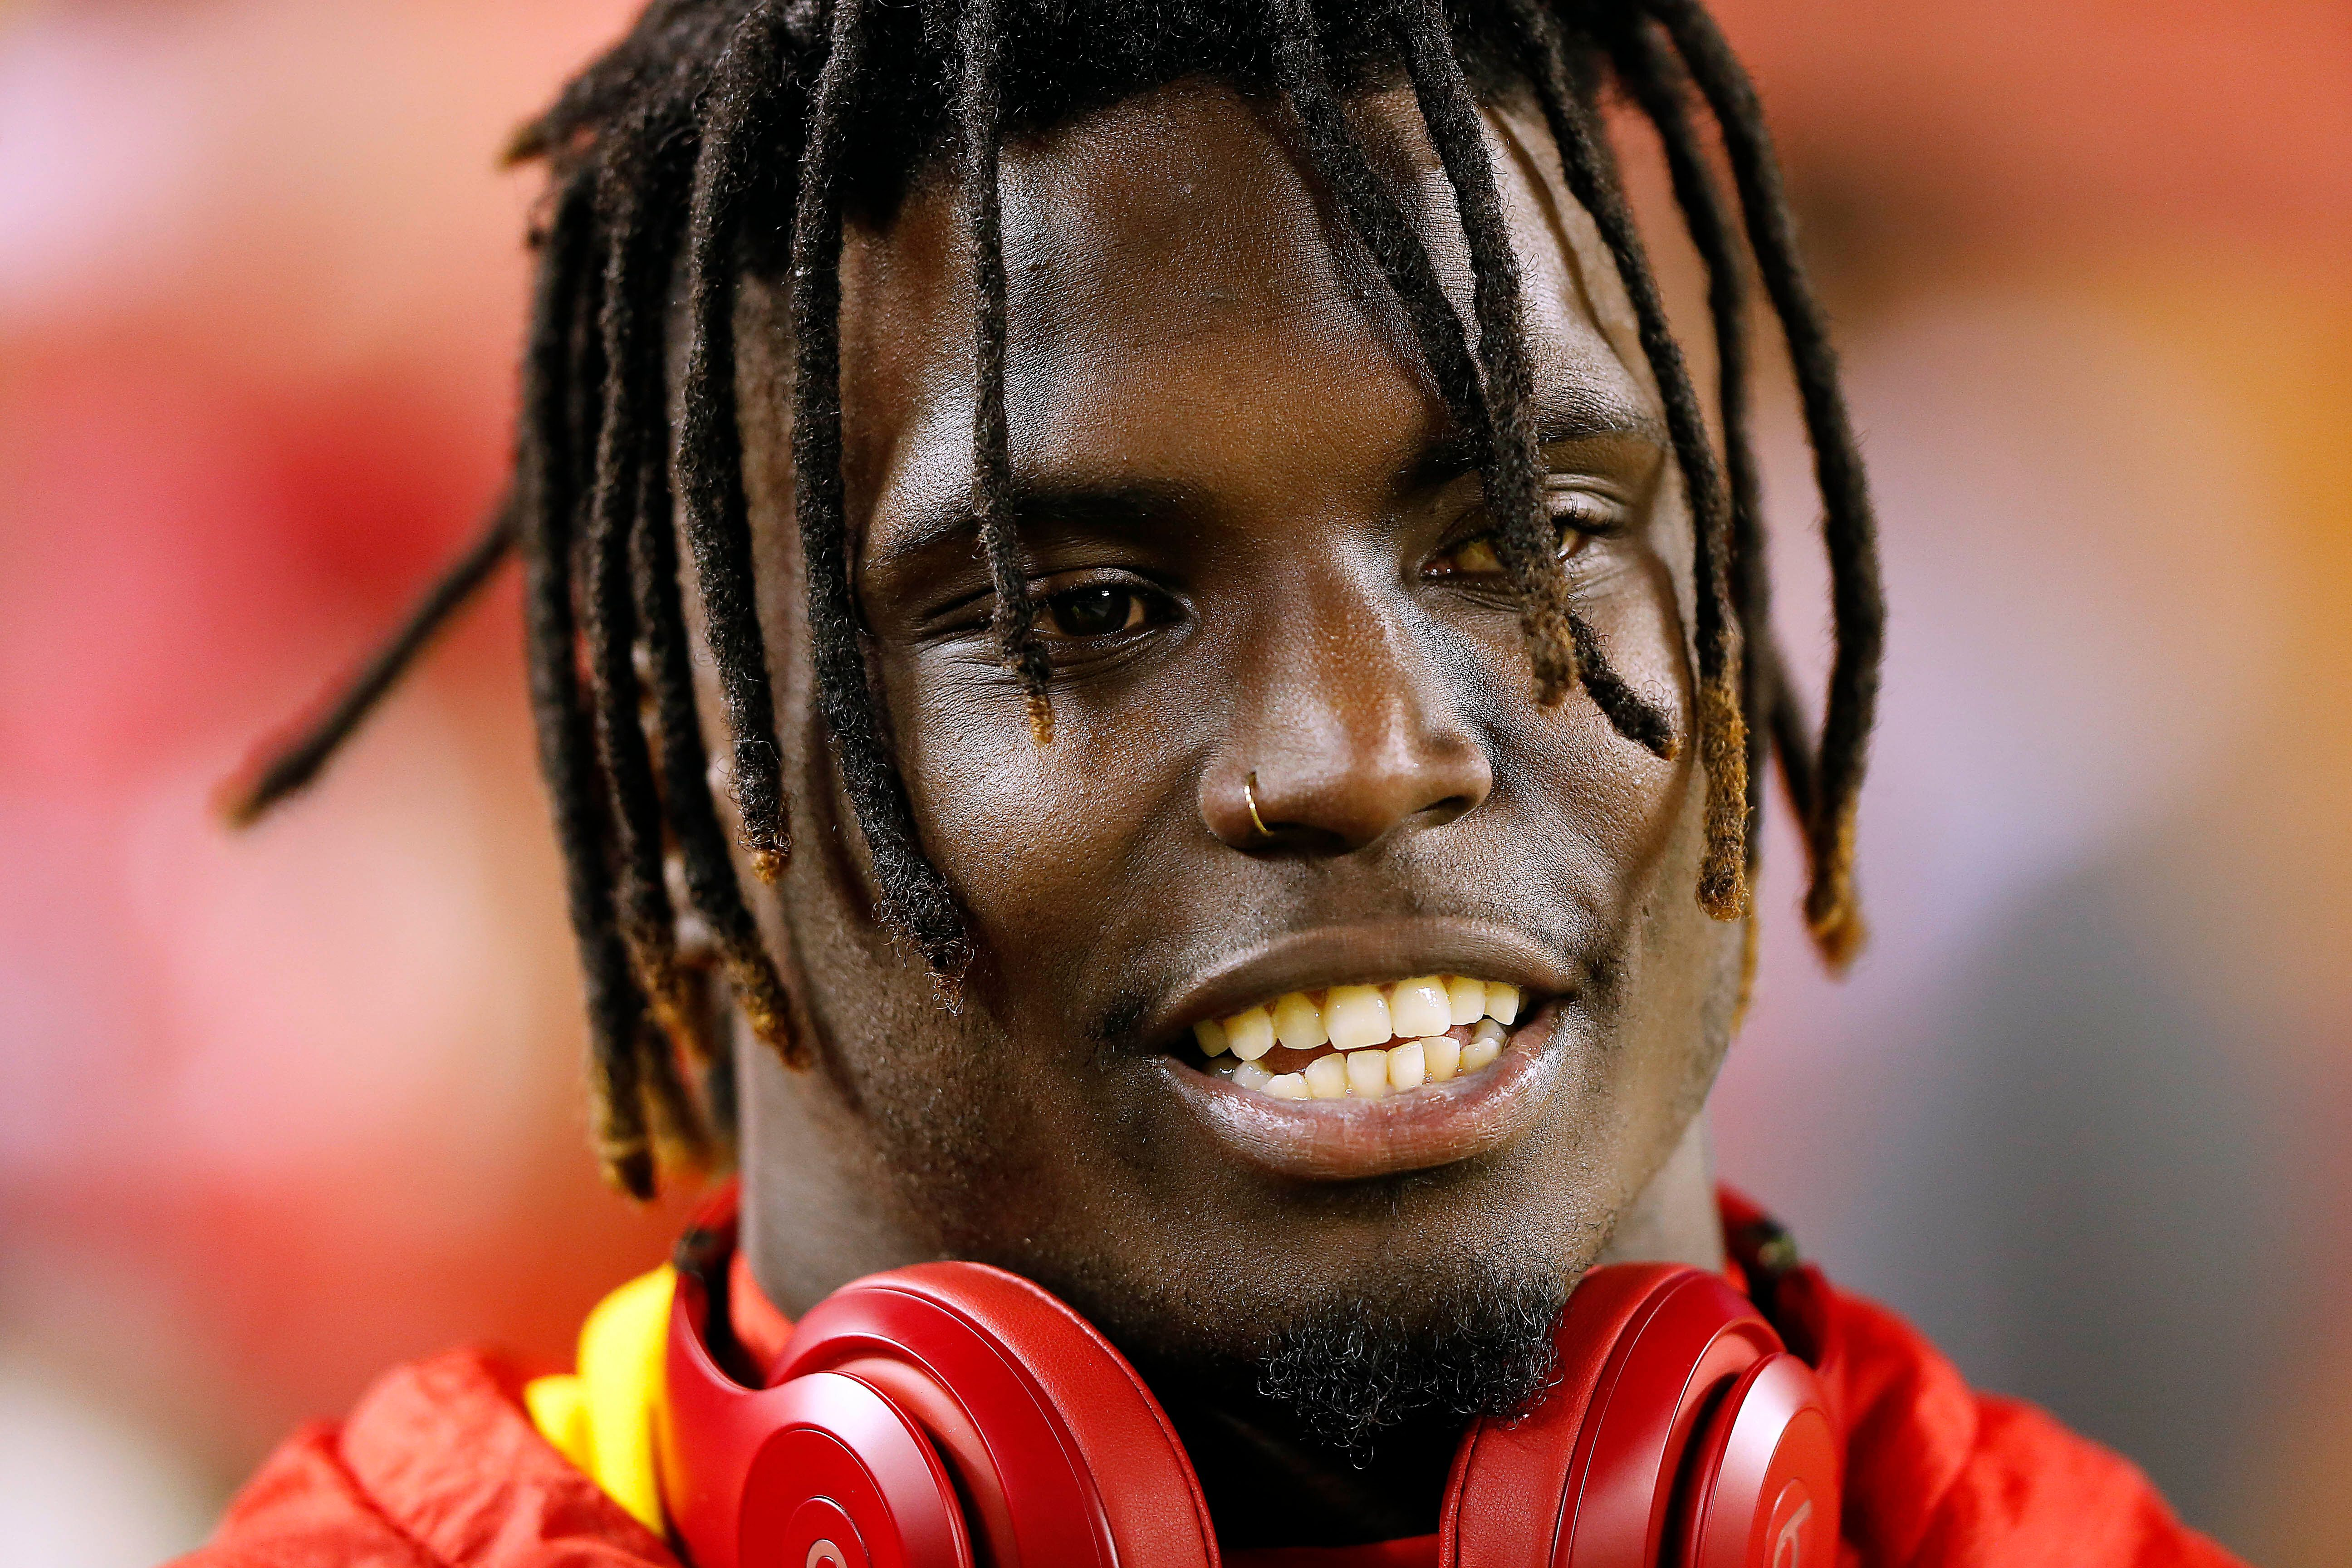 KANSAS CITY, MISSOURI - DECEMBER 13:  Wide receiver Tyreek Hill #10 of the Kansas City Chiefs warms up prior to the game against the Los Angeles Chargers at Arrowhead Stadium on December 13, 2018 in Kansas City, Missouri. (Photo by David Eulitt/Getty Images)